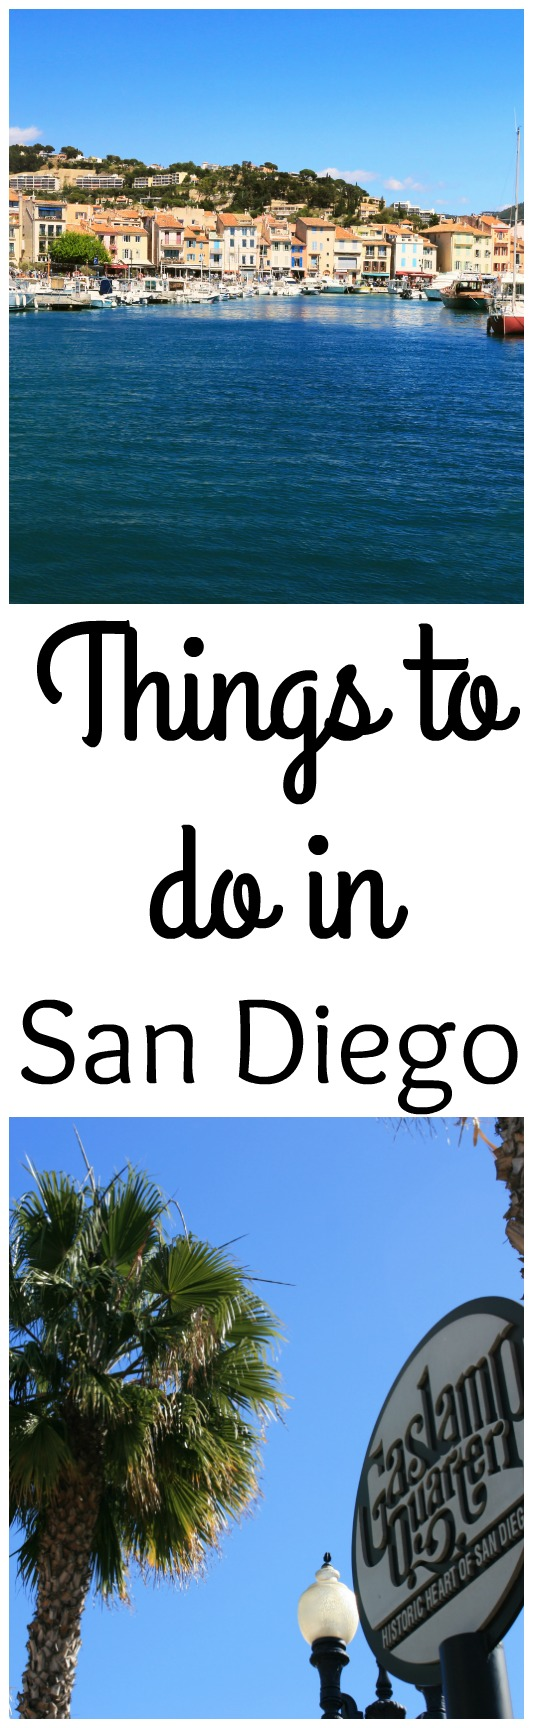 Are you heading to San Diego? Looking for things to do while visiting? Here are some great things to do in San Diego while you are visiting.